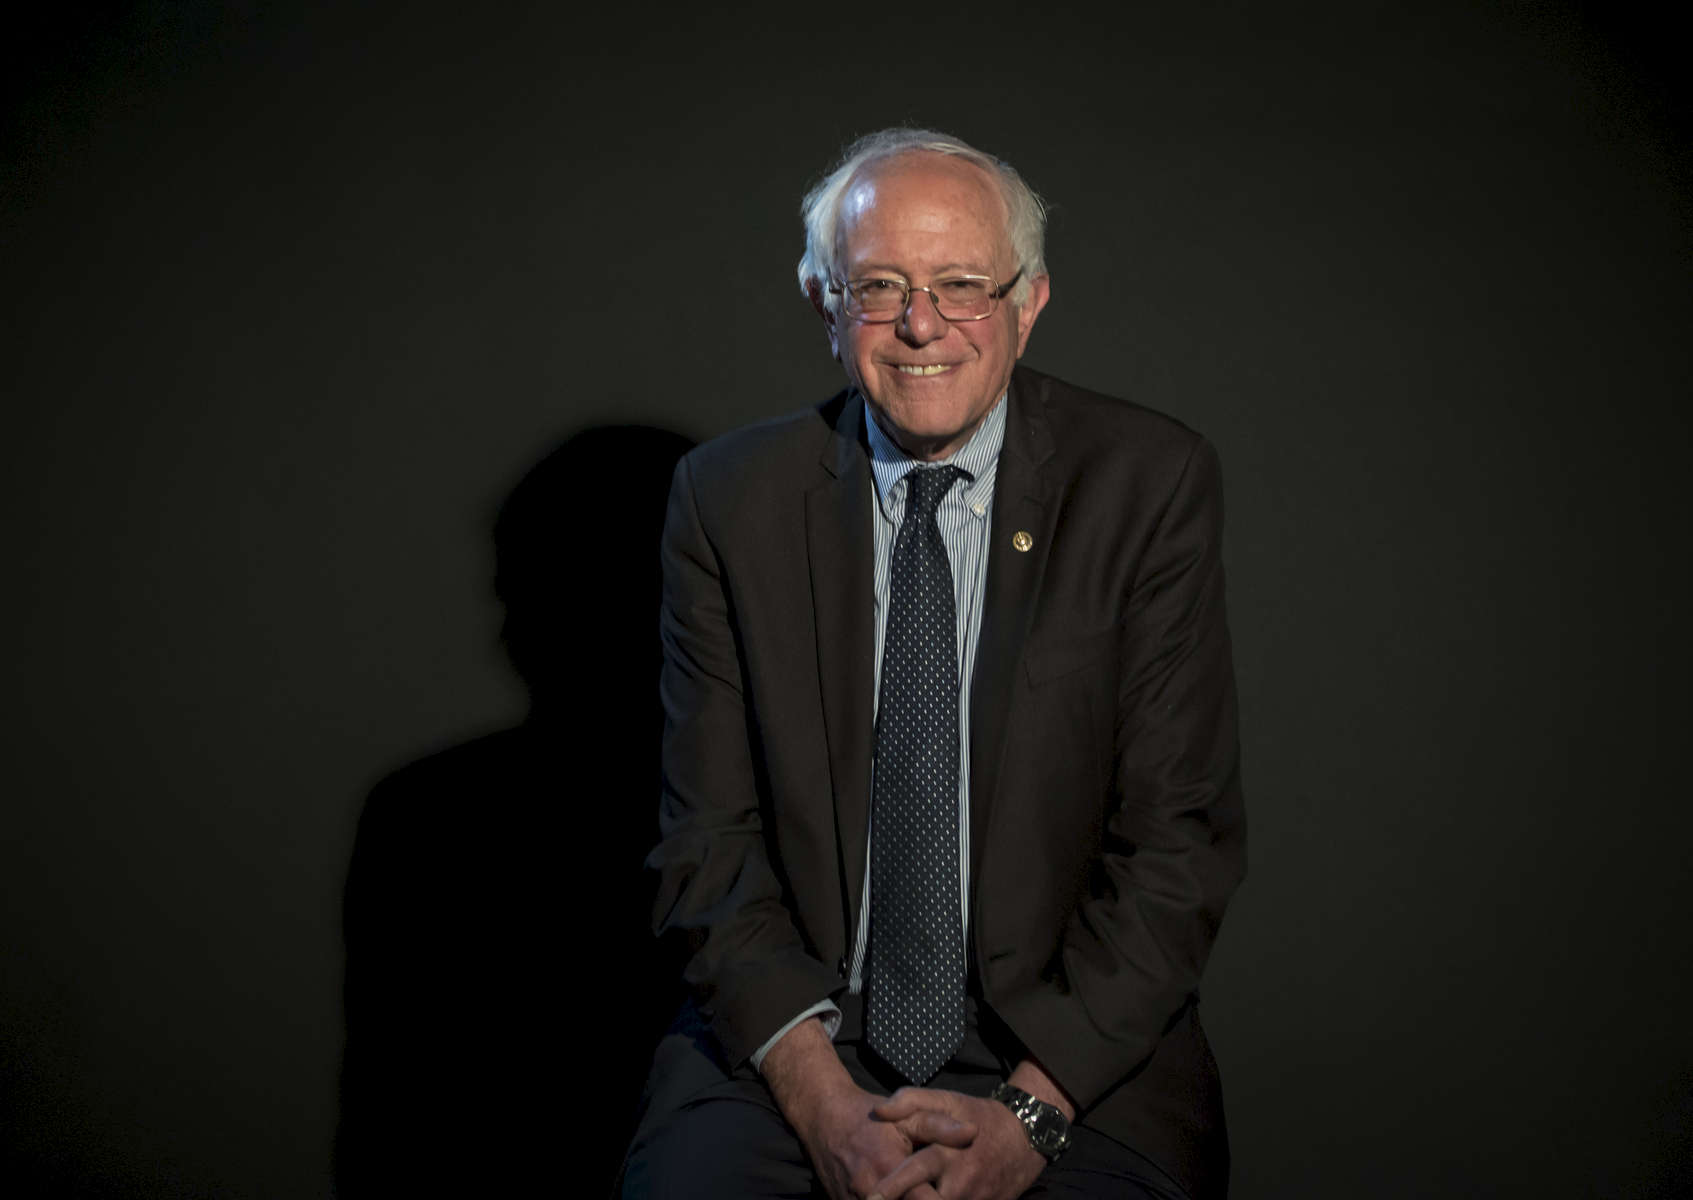 Democratic Presidential Candidate and current United States Senator from Vermont Bernie Sanders poses for photos as he visits the New York Daily News office located at 4 New York Plaza in Manhattan on Friday, April 1, 2016. Sanders who is competing against Hillary Clinton for the Democratic nomination for United States president, campaigns in New York as the state's Democratic primary approaches.